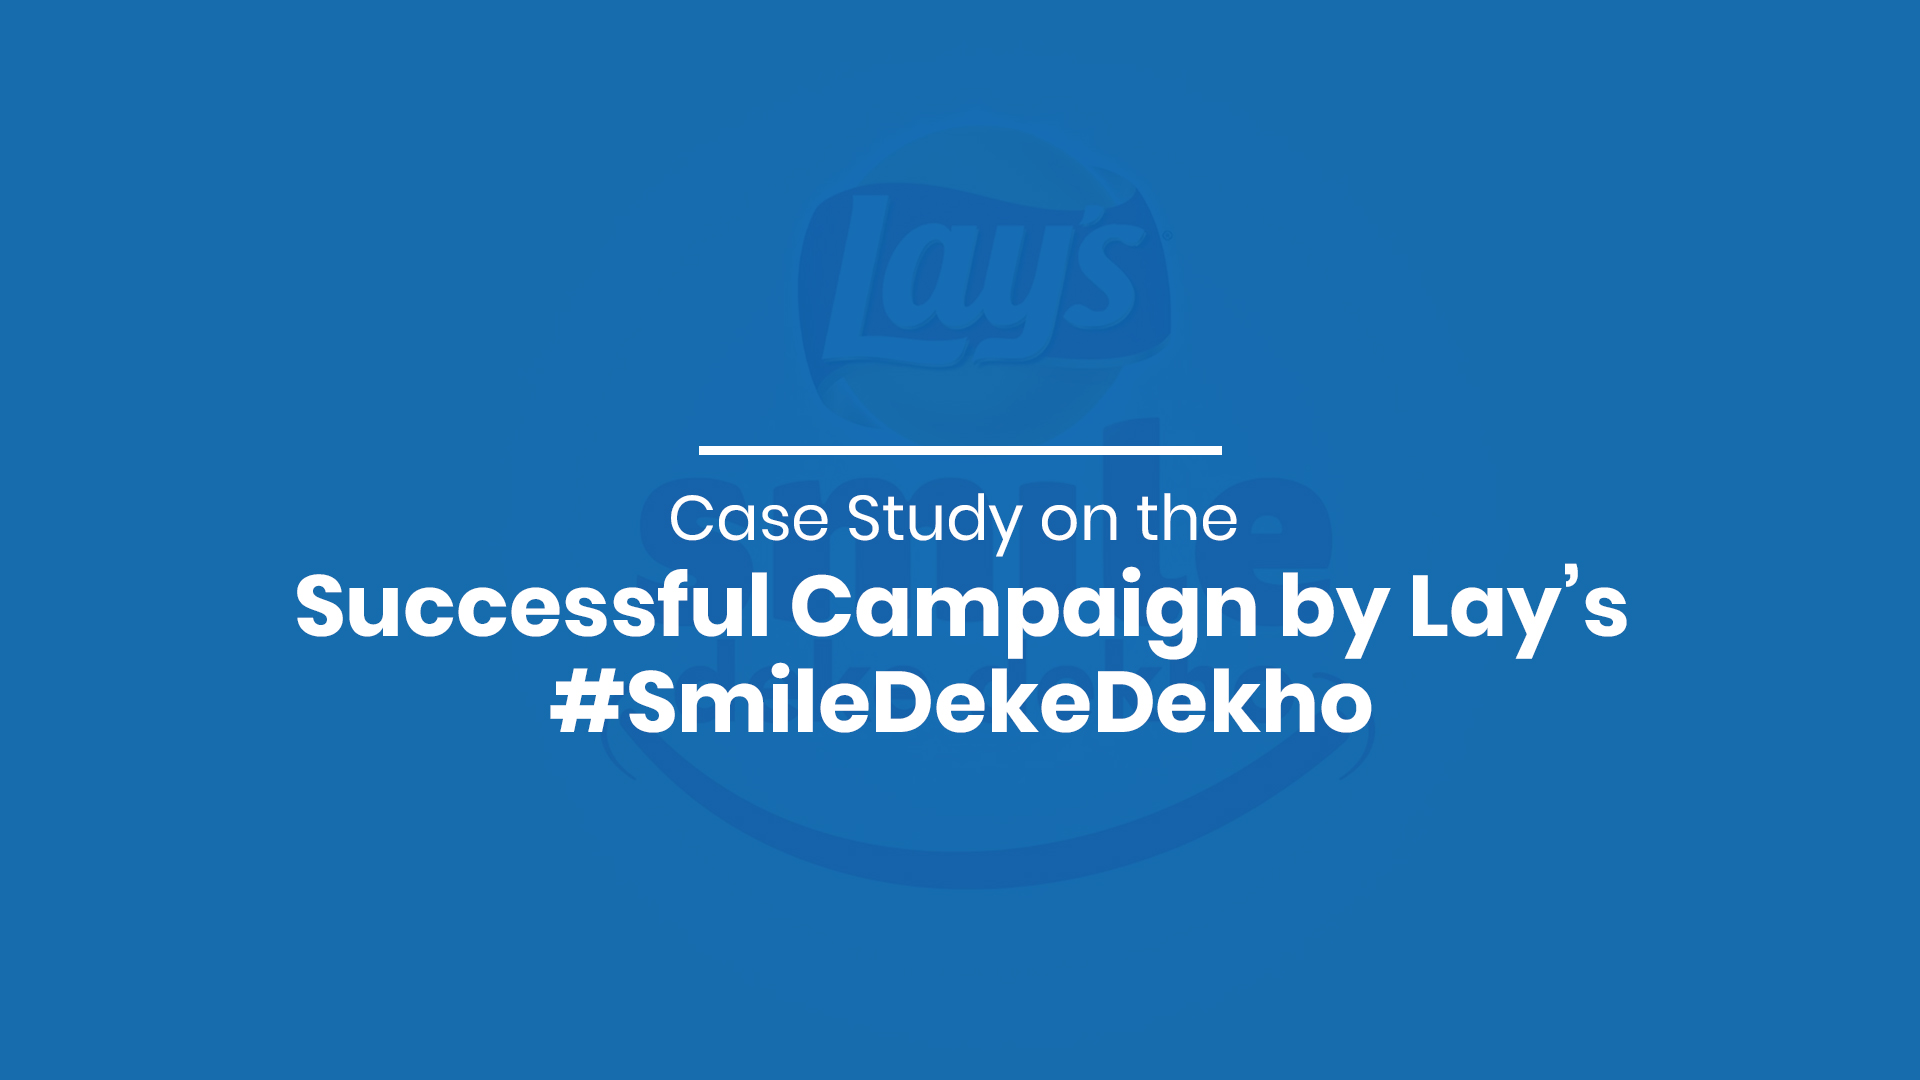 Case Study on the Successful Campaign by Lay's #SmileDekeDekho